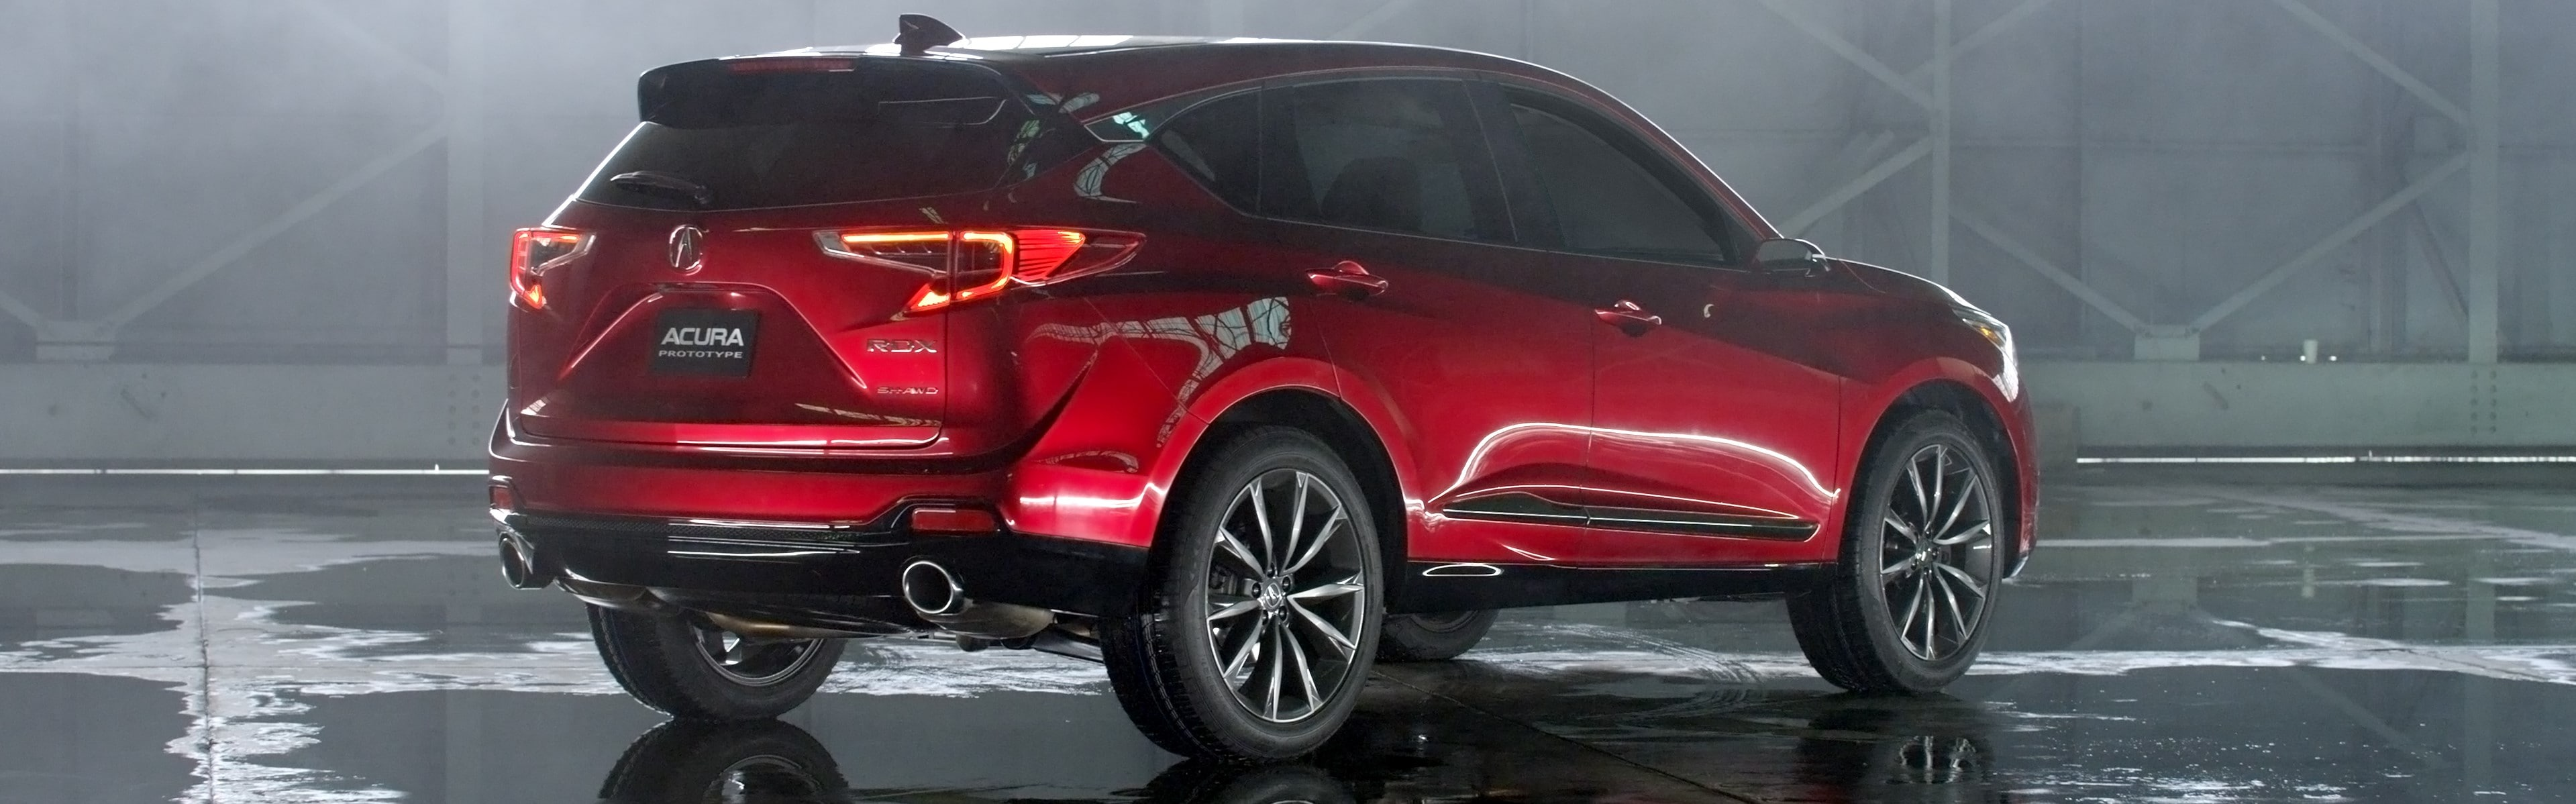 2019 Acura Rdx Acura Of Pembroke Pines Serving South Florida